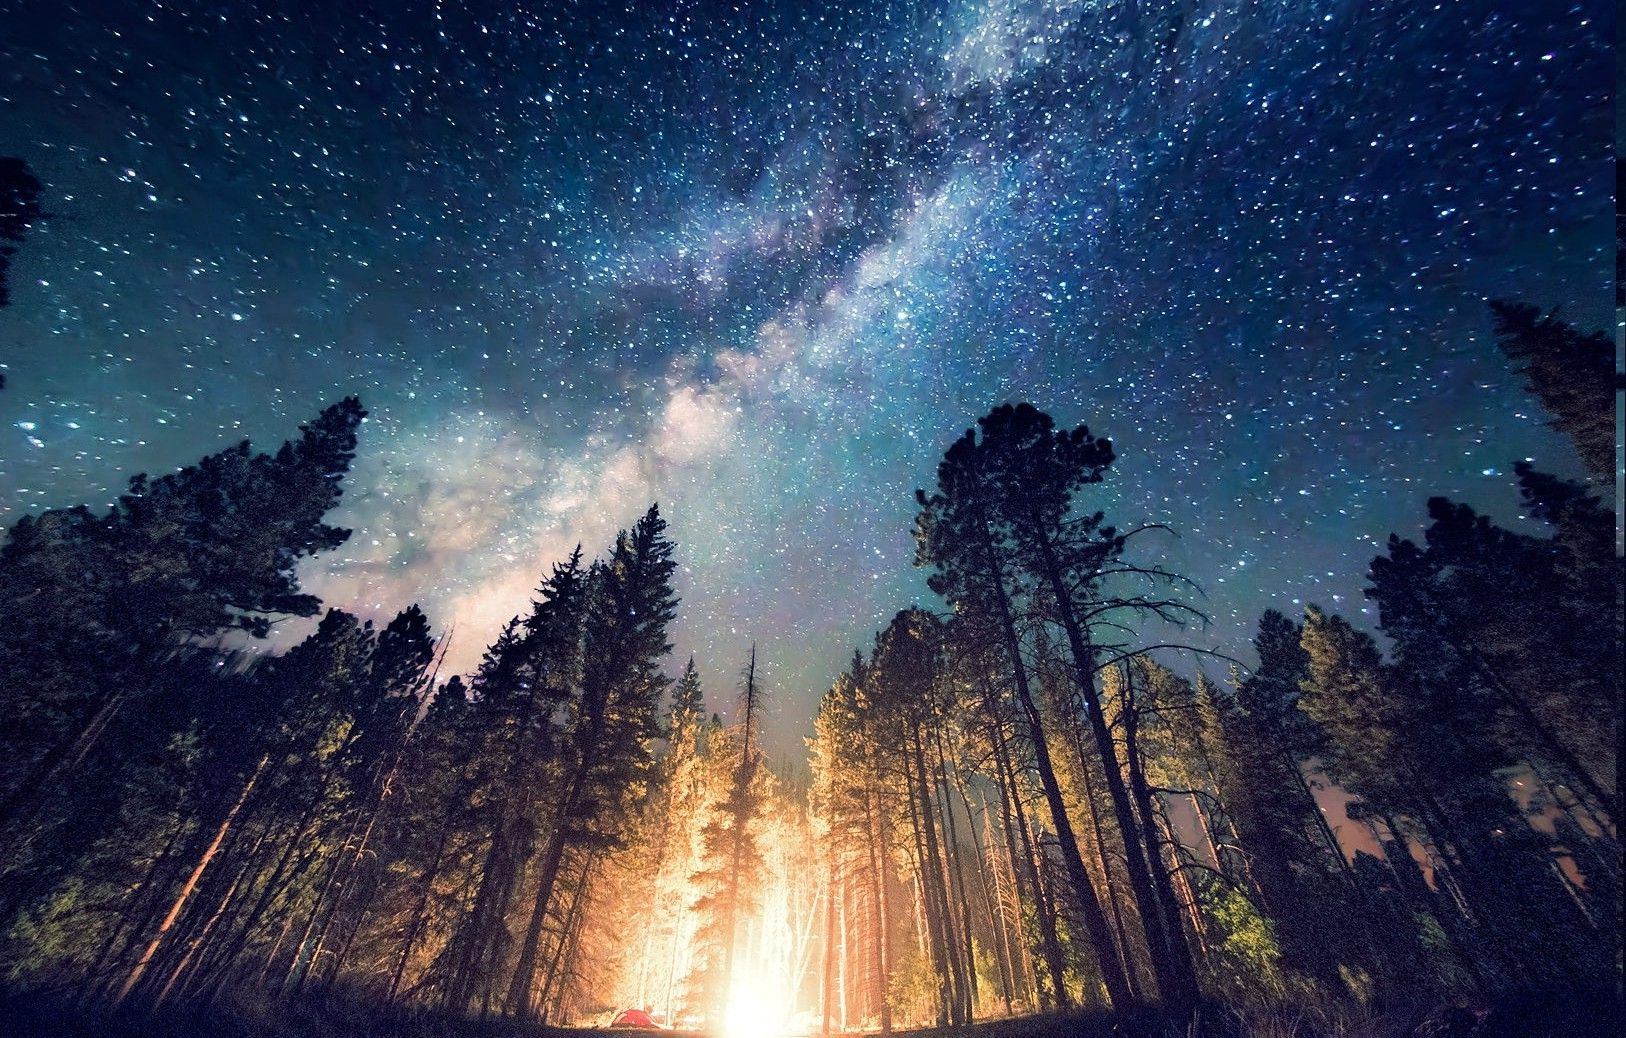 Forest Camping Starry Night Trees Milky Way Long Exposure Landscape Sky Full Of Stars Scenery